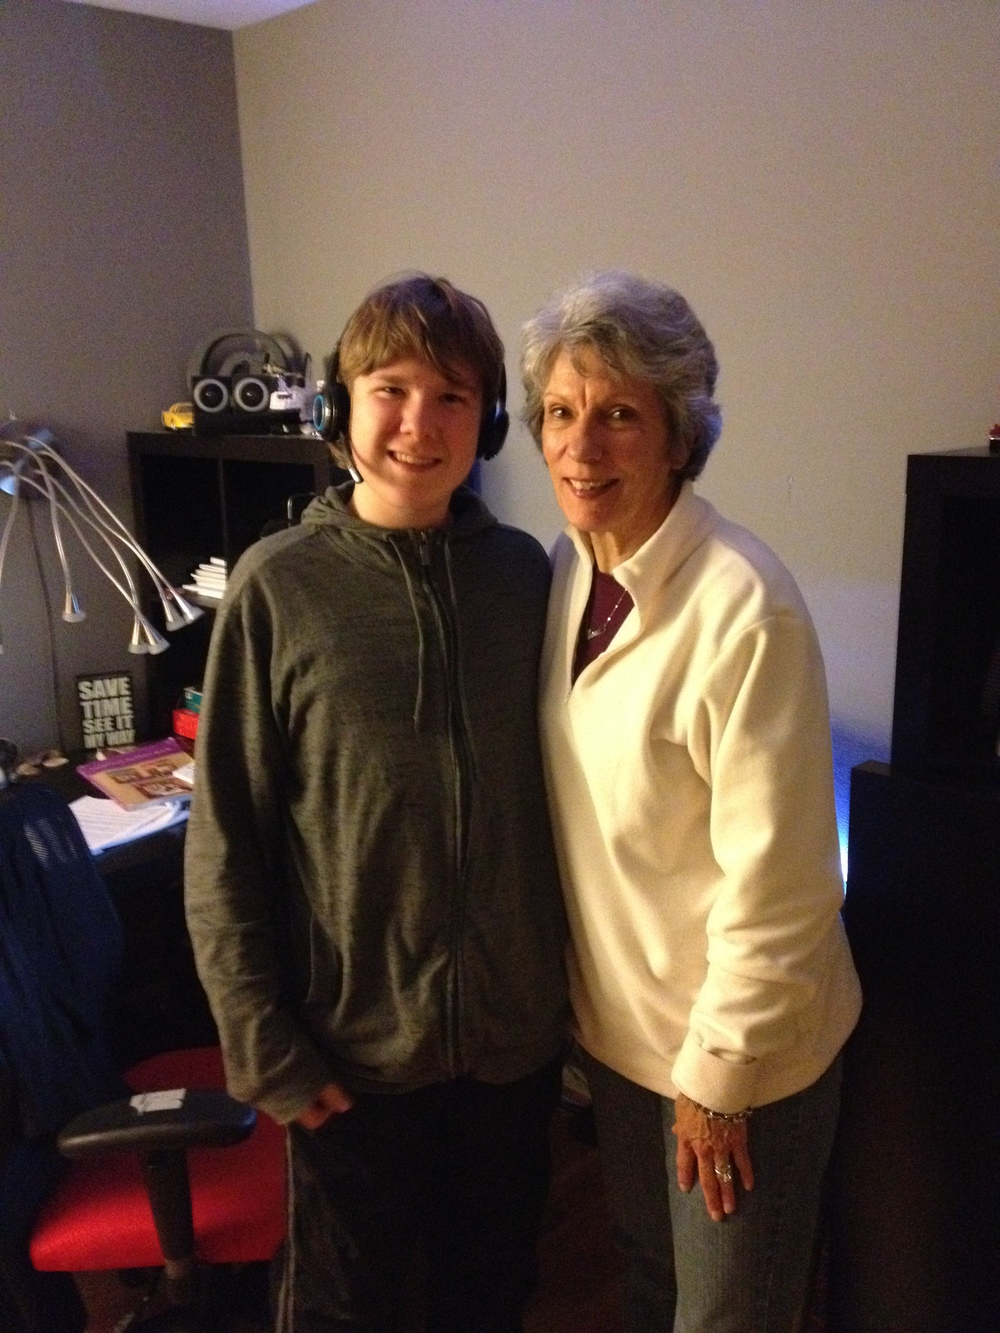 Grandson Grey, as tall as Nanann.